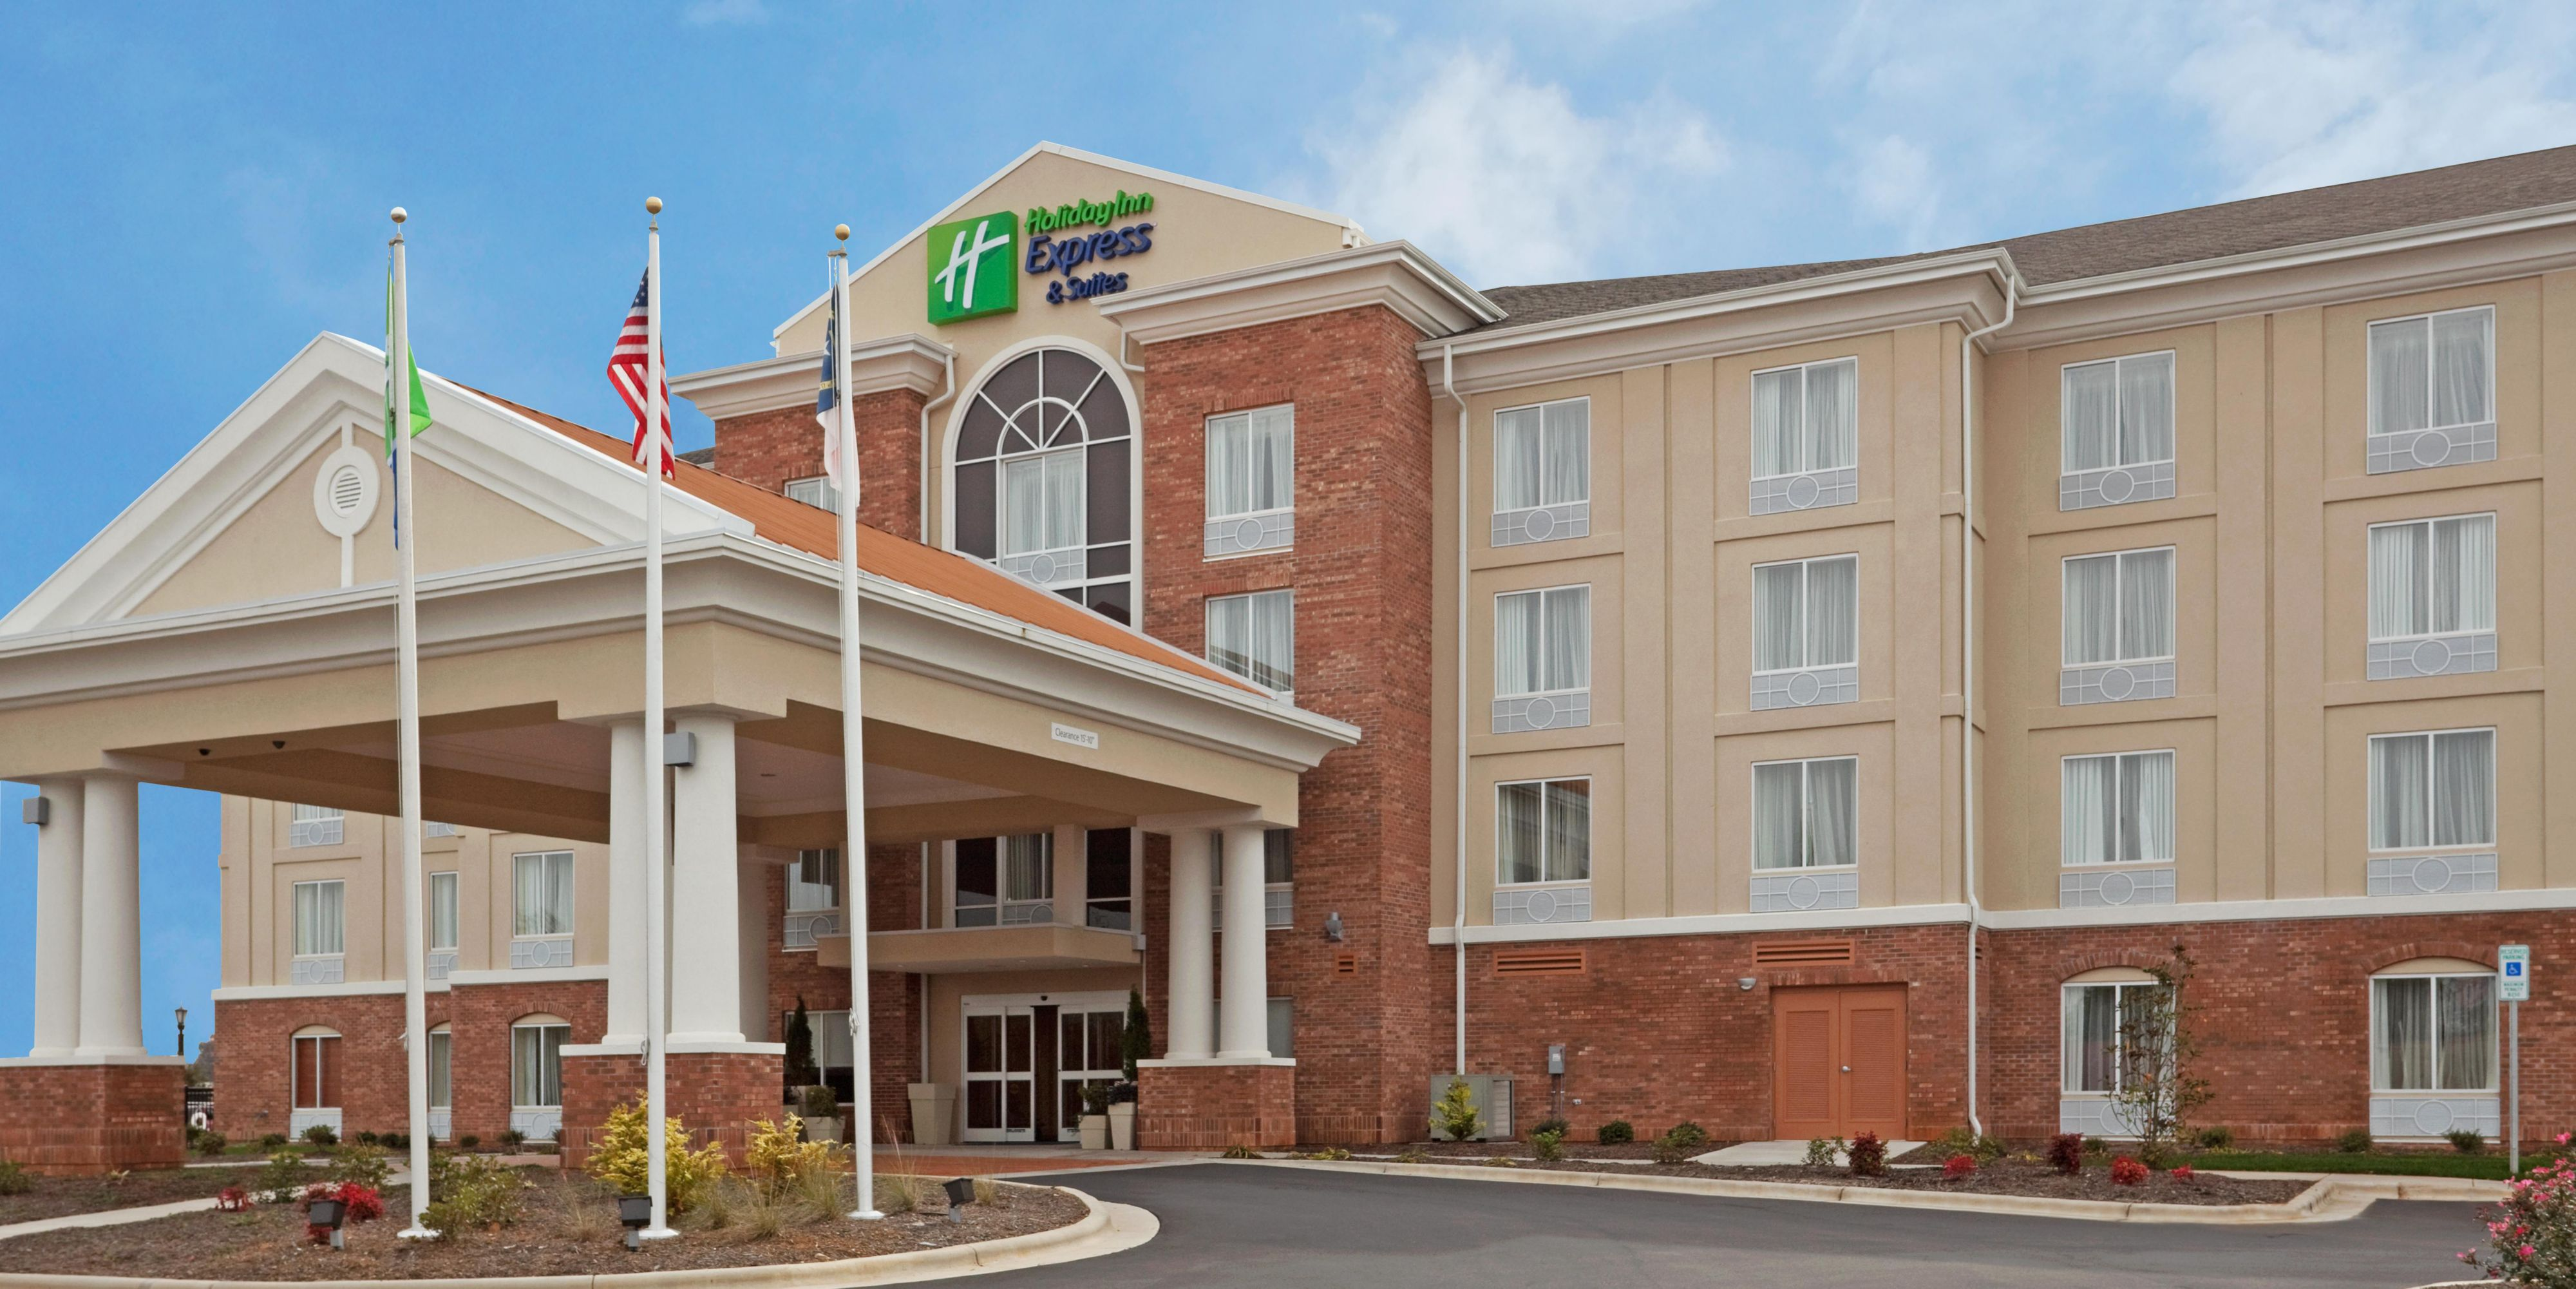 holiday-inn-express-and-suites-greensboro-4271039711-2x1